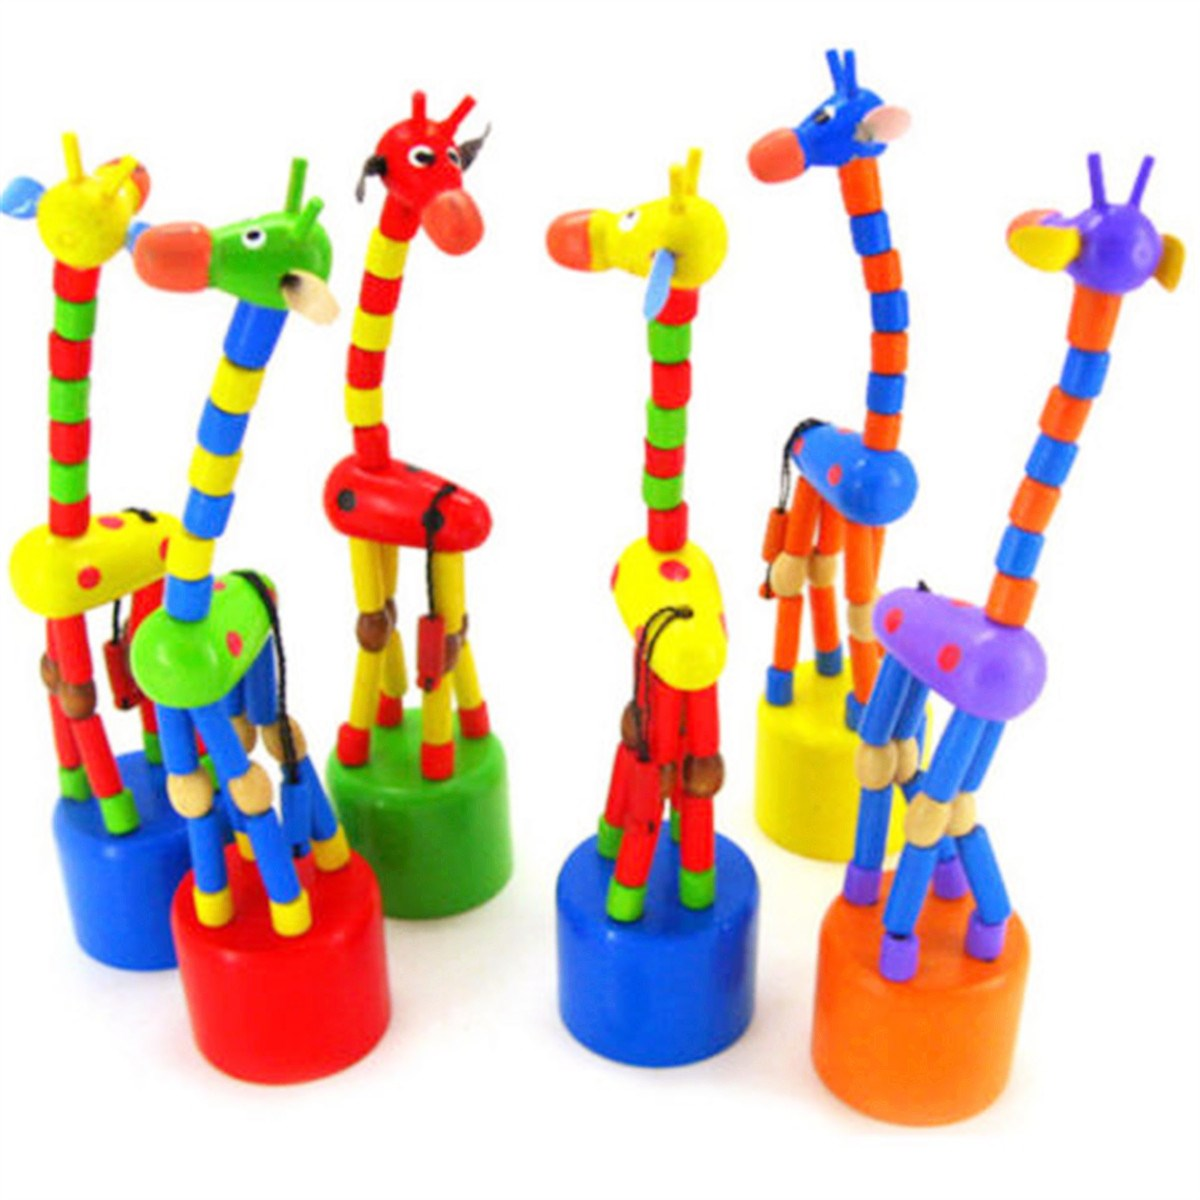 New Rocking Giraffe Wooden Toys Kids Cartoon Colorful Swing Educational Toys For Children Kids Wire Control To Learn Animal Toys magnetic wooden puzzle toys for children educational wooden toys cartoon animals puzzles table kids games juguetes educativos